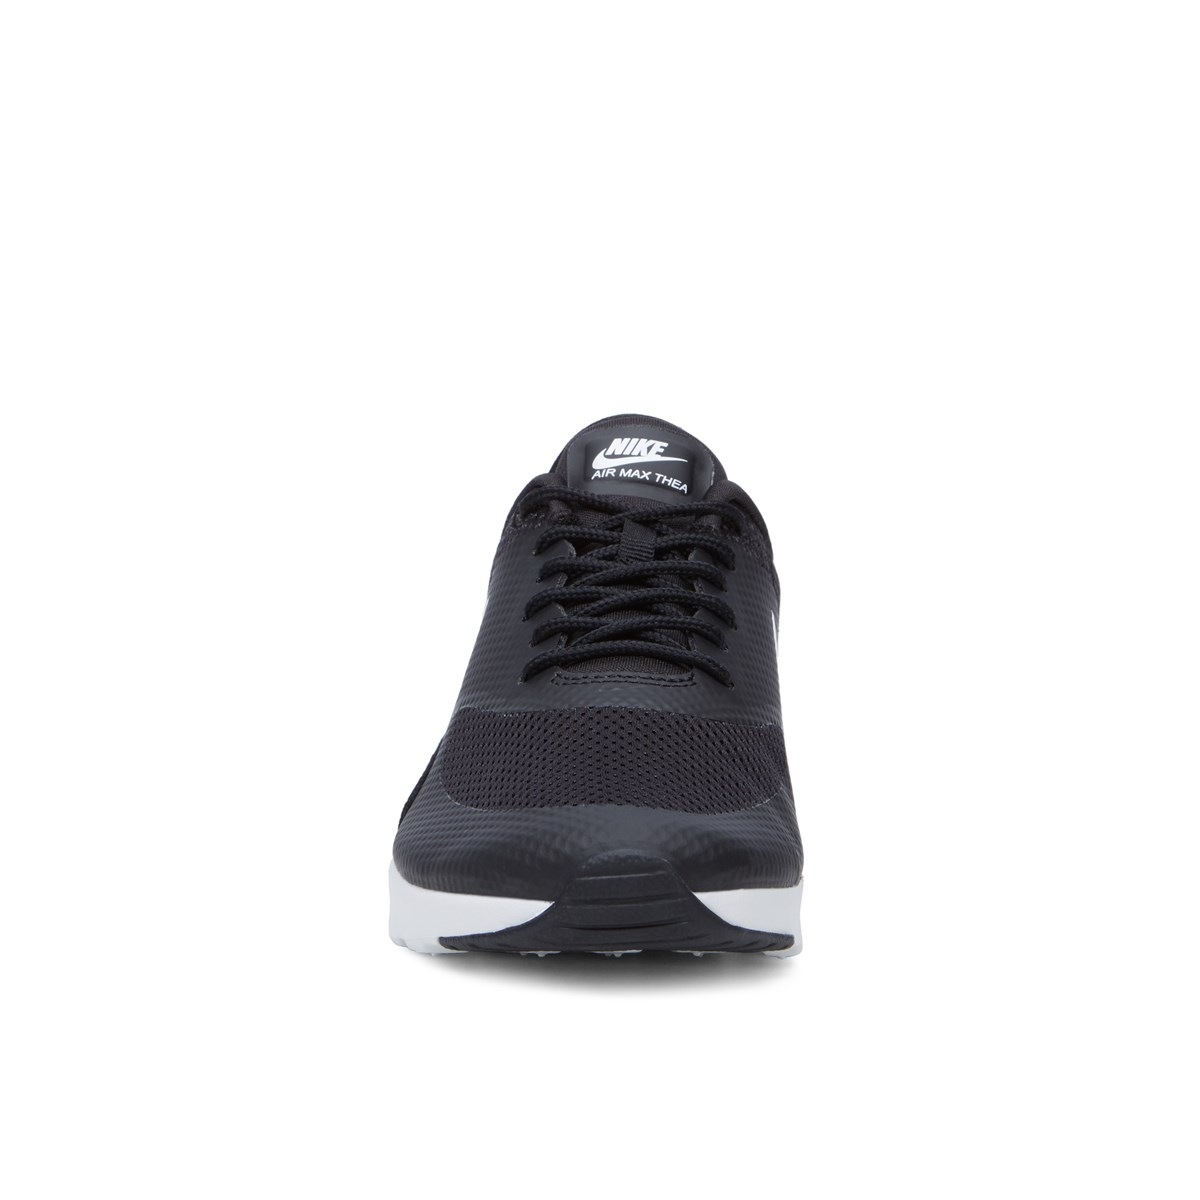 lowest discount the cheapest online store Women's Air Max Thea Black Sneaker